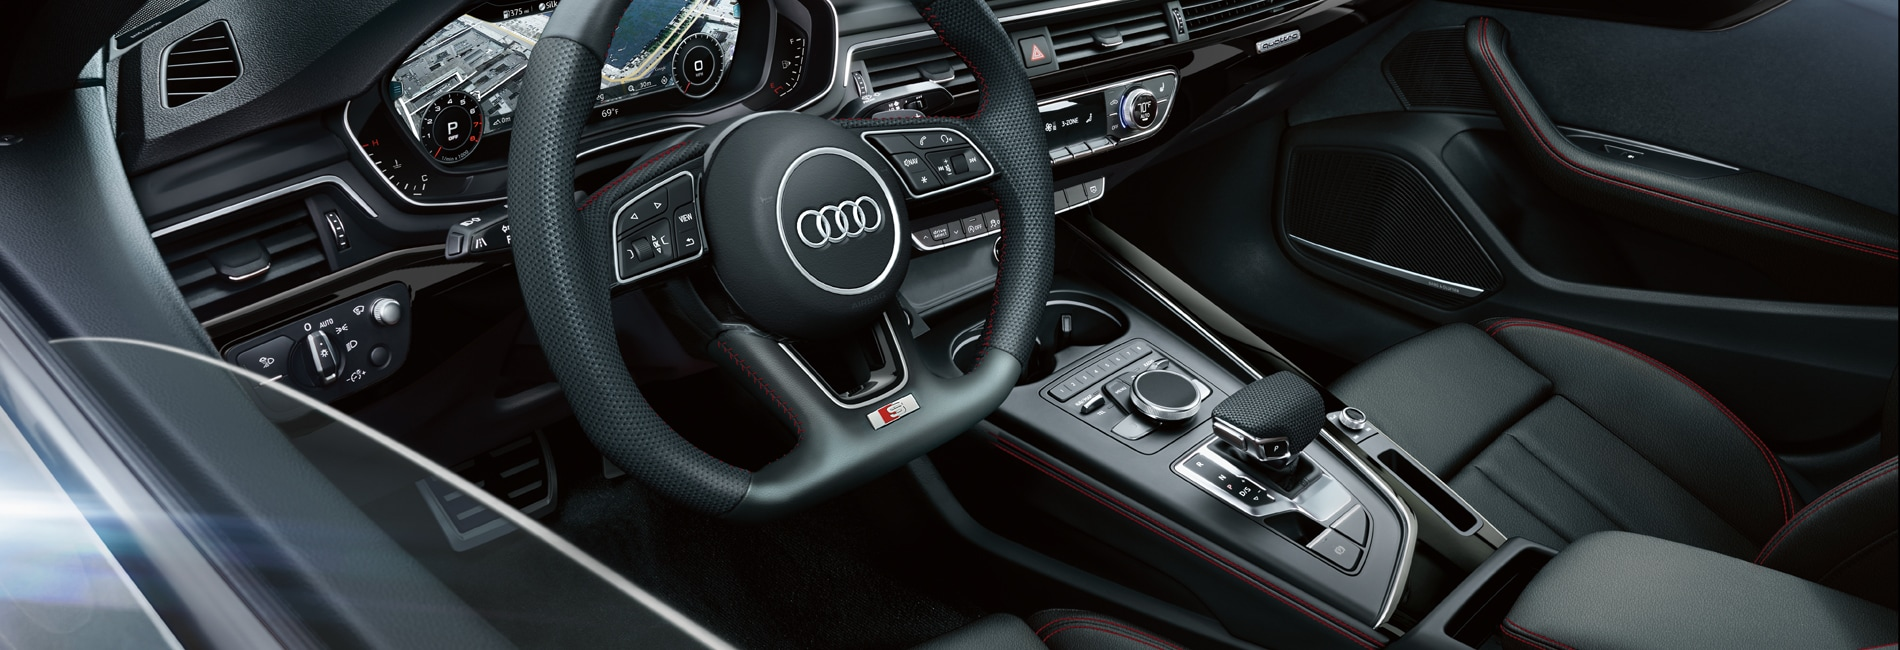 Audi A4 Interior Features